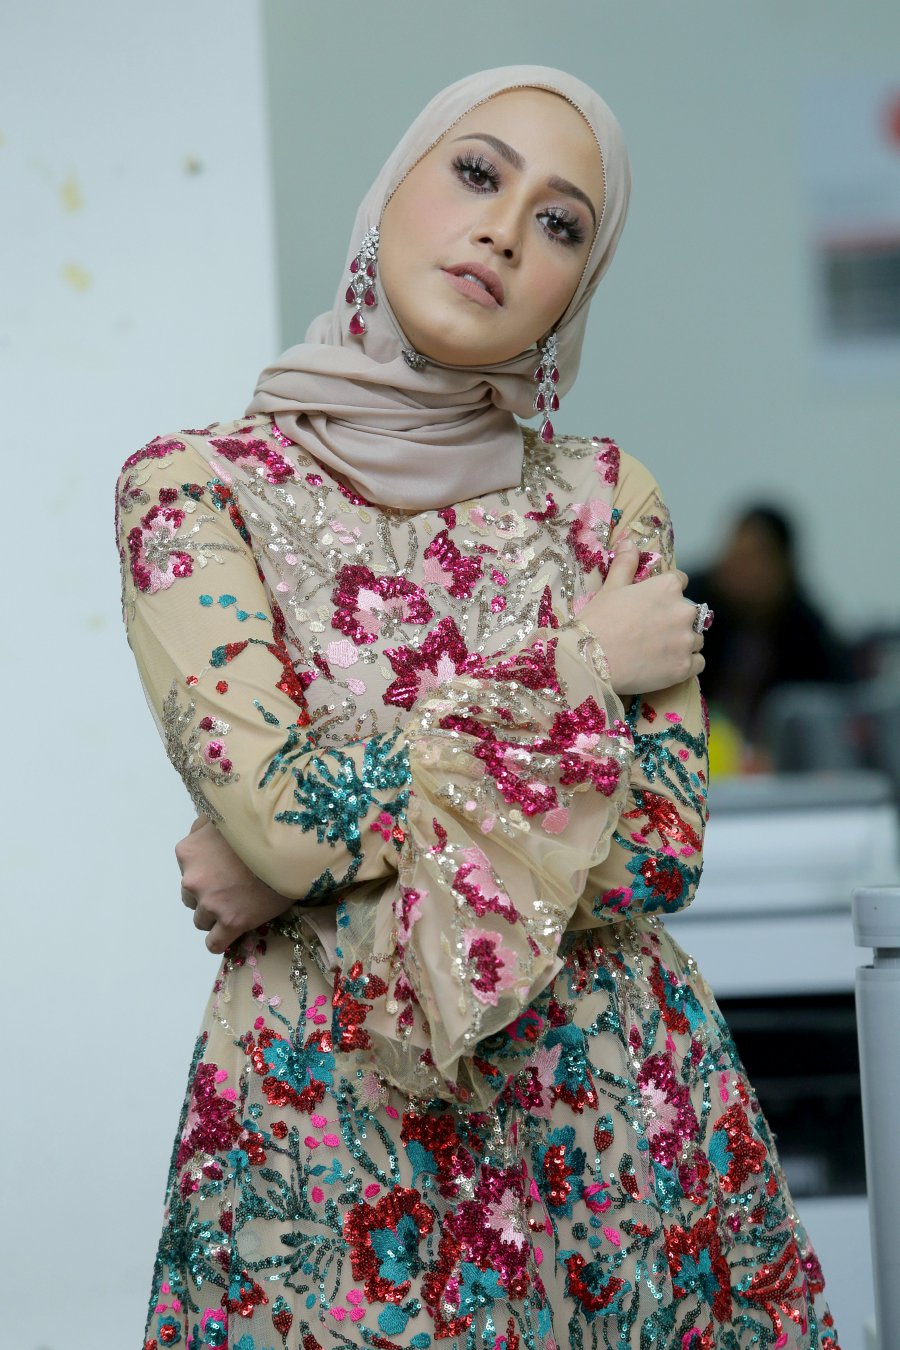 After Being Single For Three Years Now Popular Actress Nur Fathia Abd Latiff Is In No Hurry To Find Love Pix By NURUL SYAZANA ROSE RAZMAN